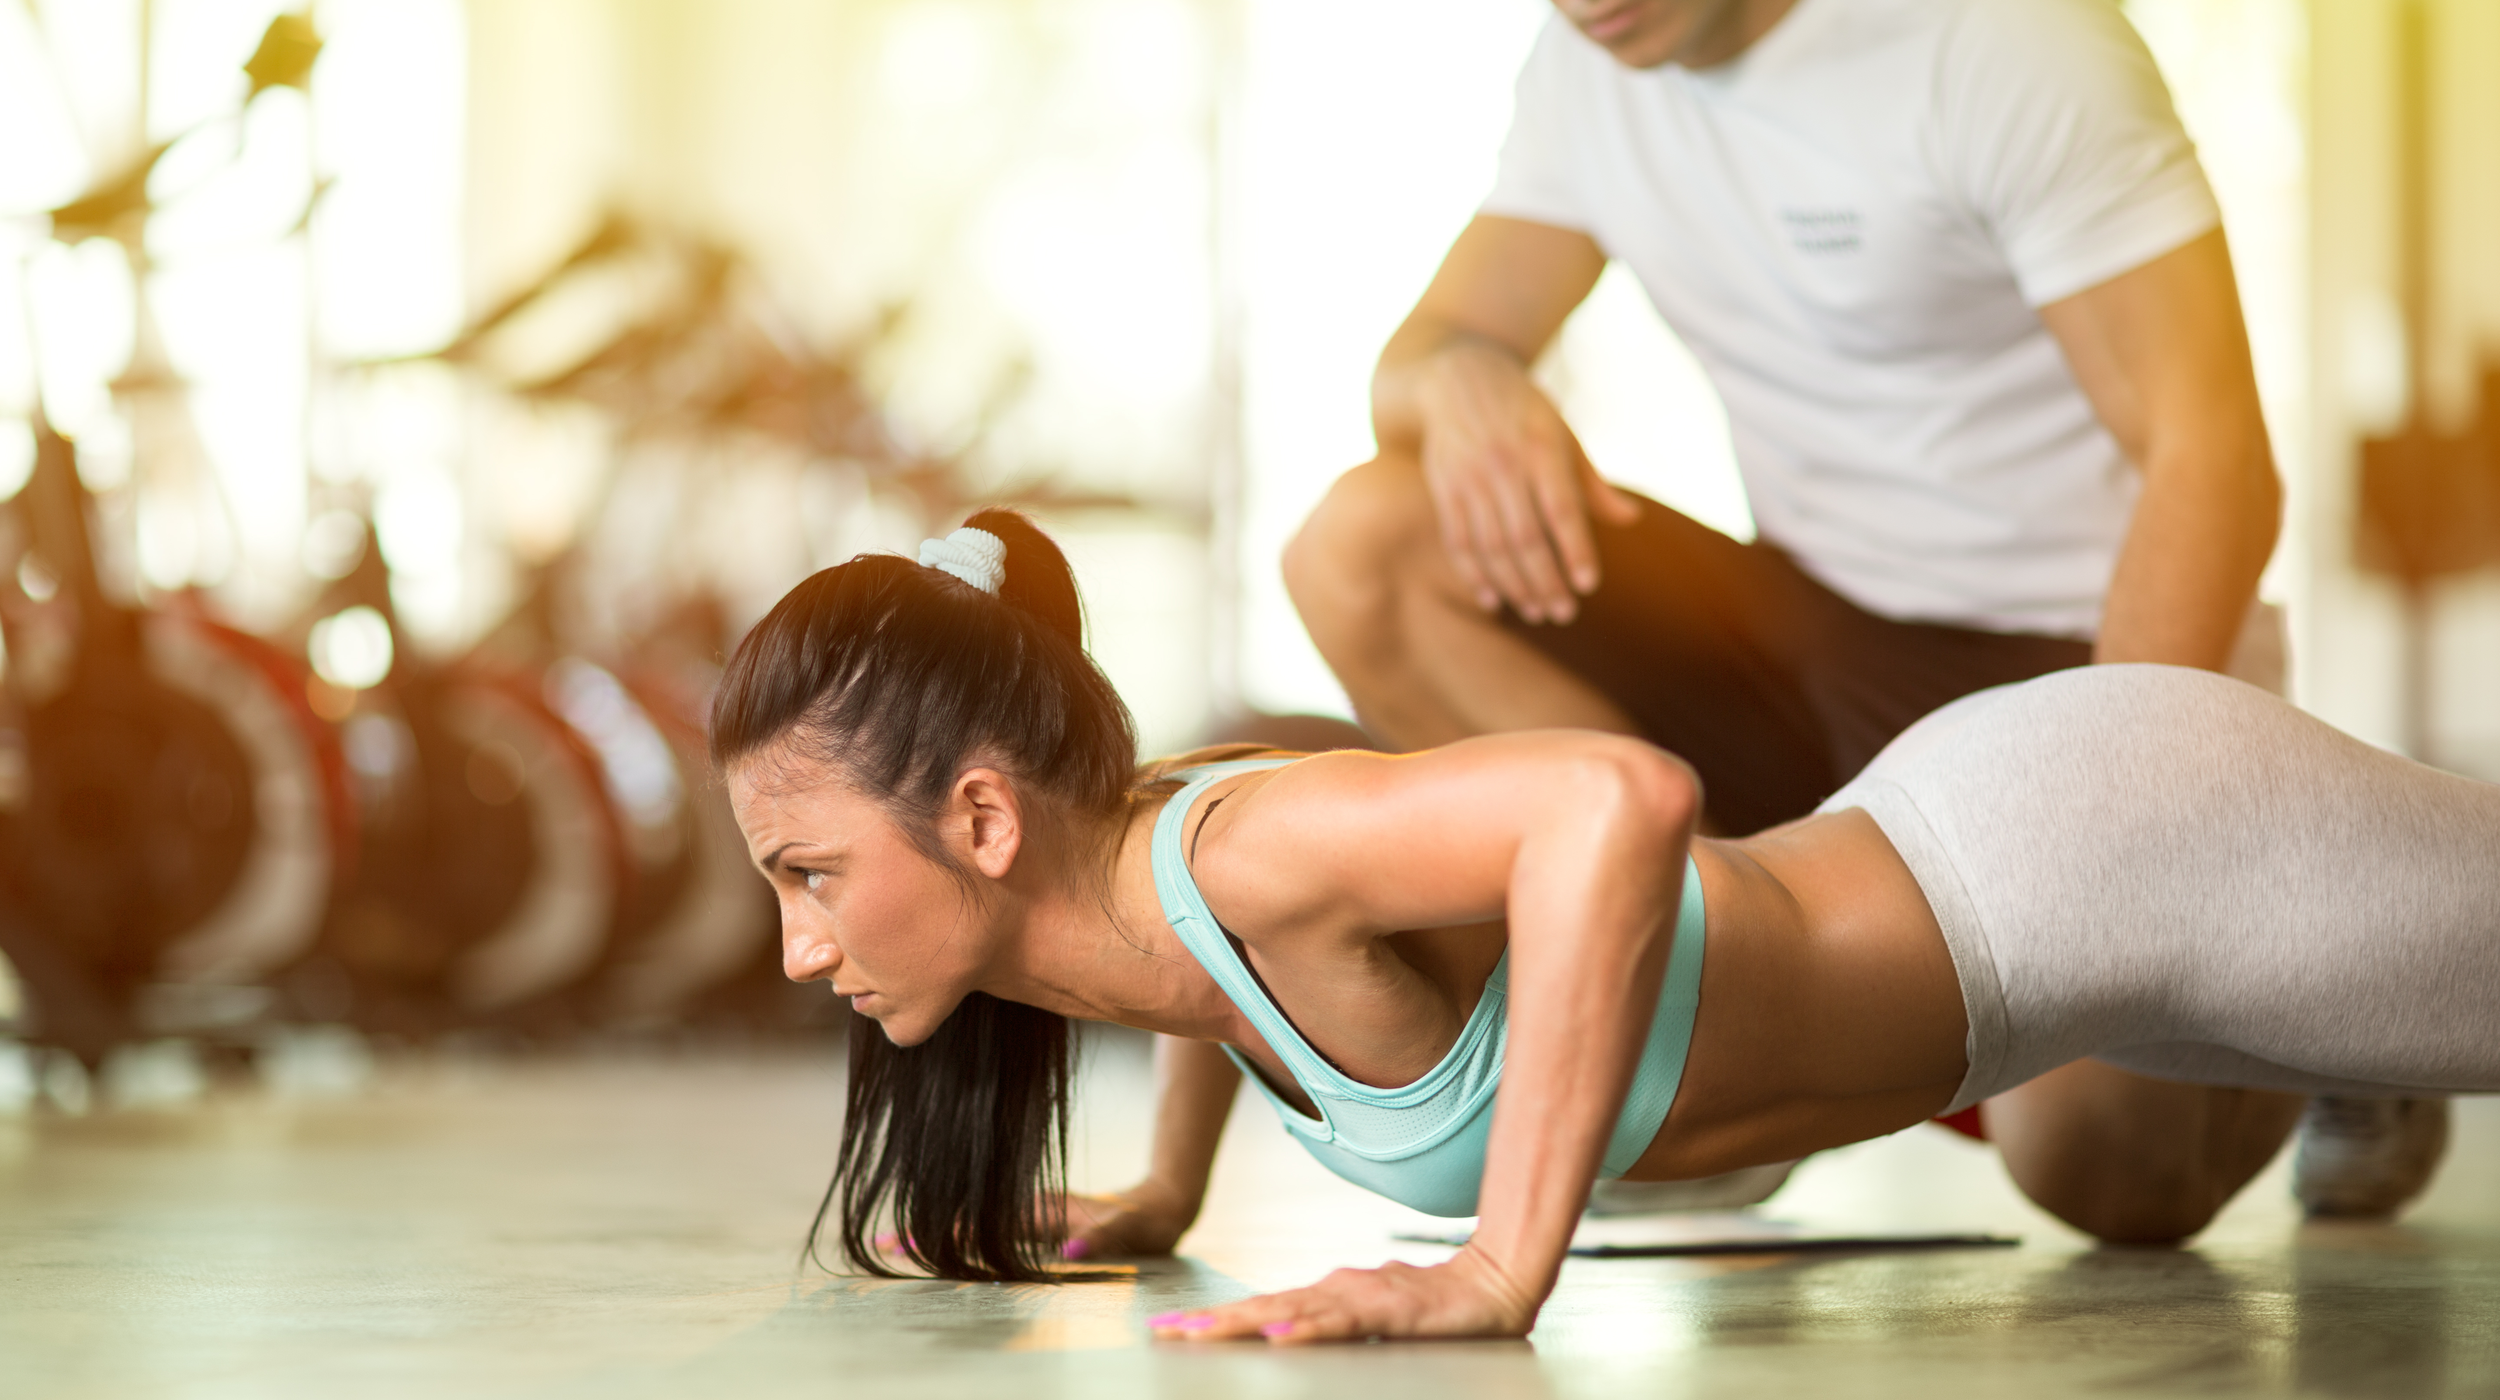 The Biggest Drawbacks to Being a Personal Trainer